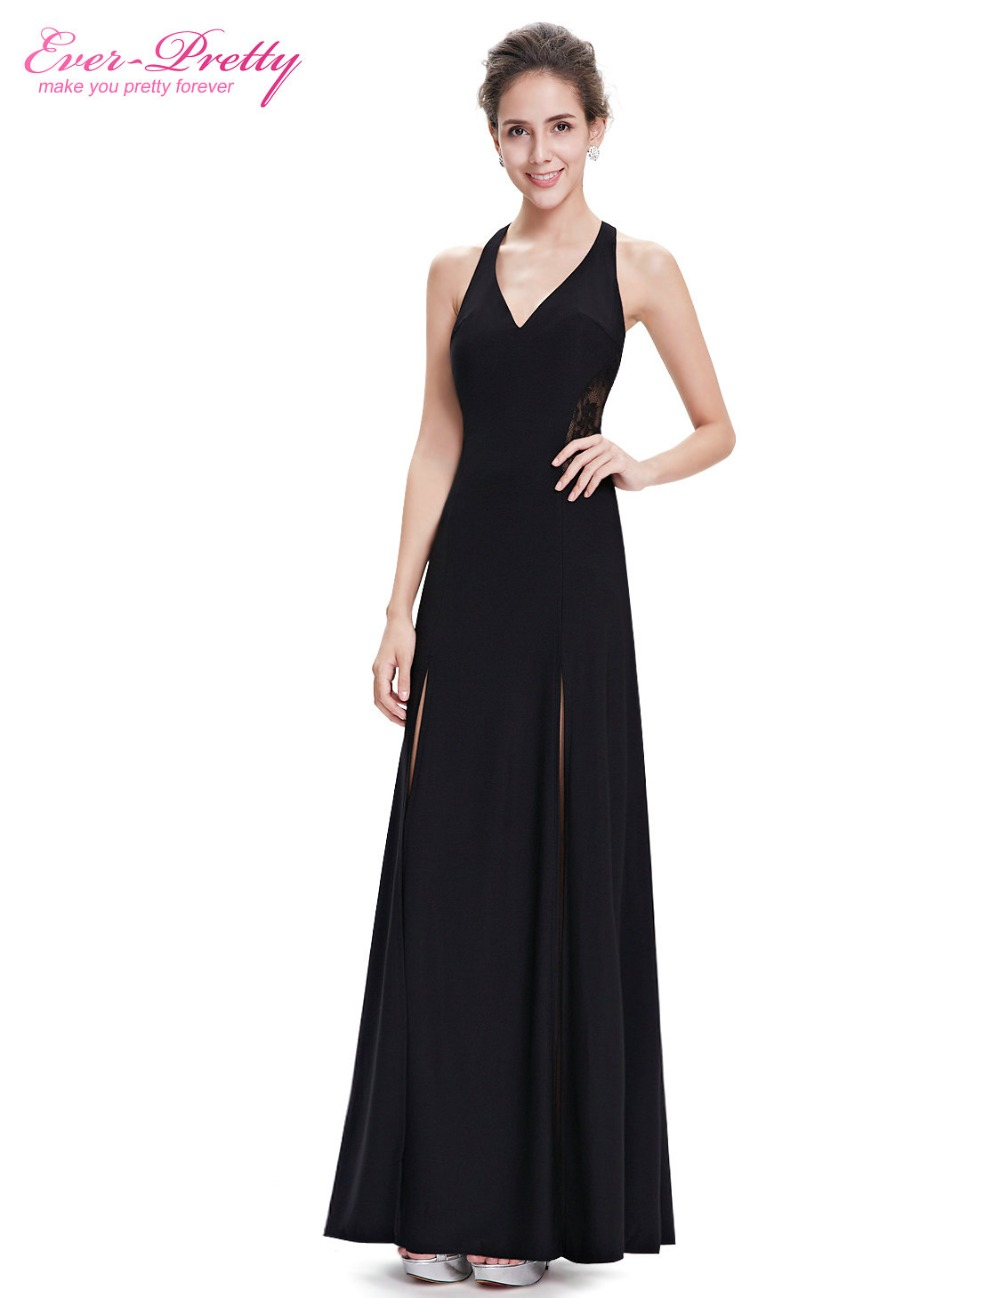 Compare prices on for ever yours online shoppingbuy low price ever pretty evening dresses he08695bk womens elegant black sleeveless sexy halter long evening dresses 2017 new ombrellifo Image collections